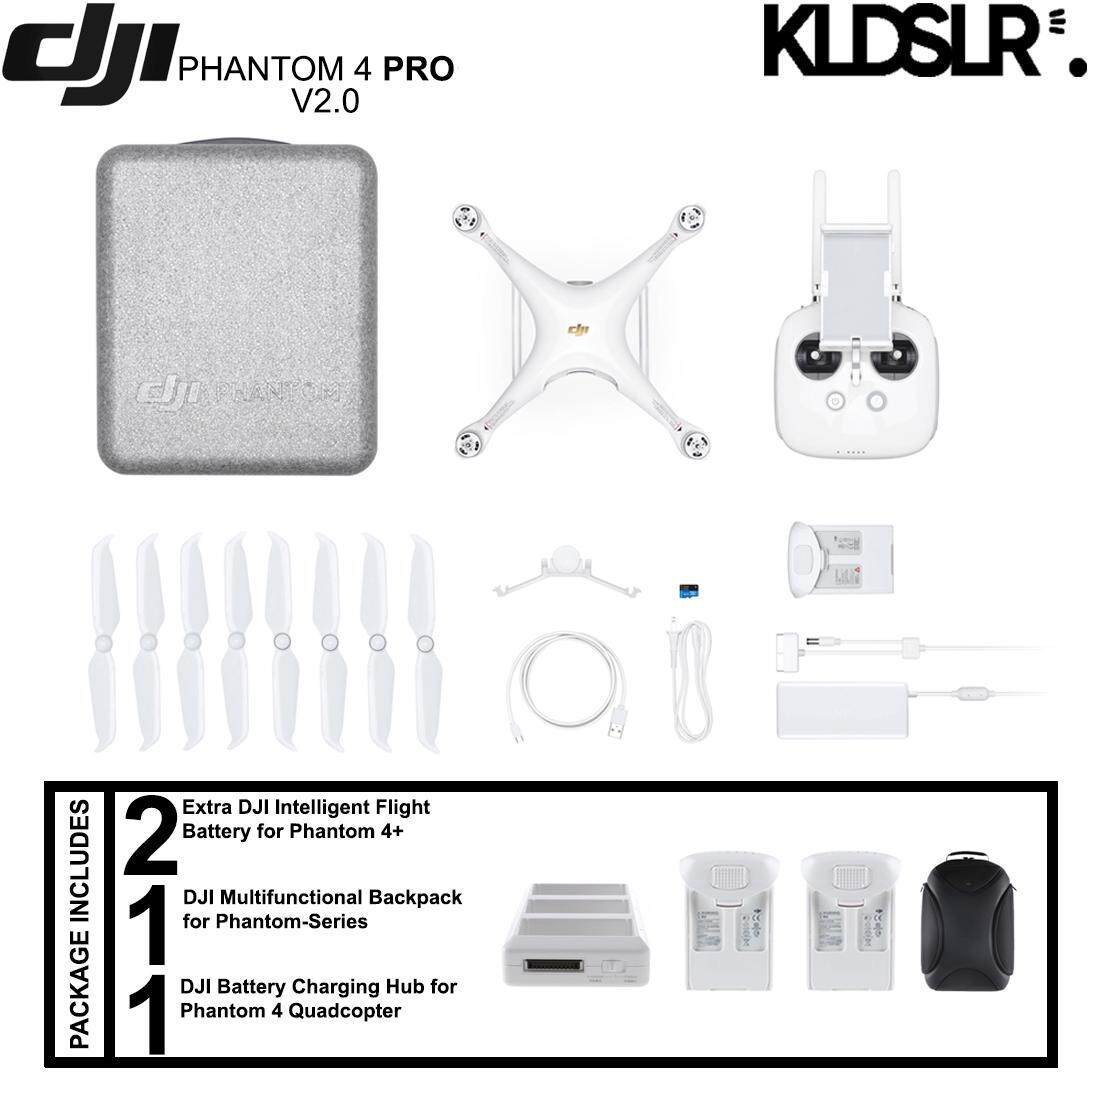 DJI Phantom 4 Pro+ Version 2.0 Quadcopter (FREE Extra 2 Original Batteries + Multifunctional Bag for Phantom-Series + Charging Hub)